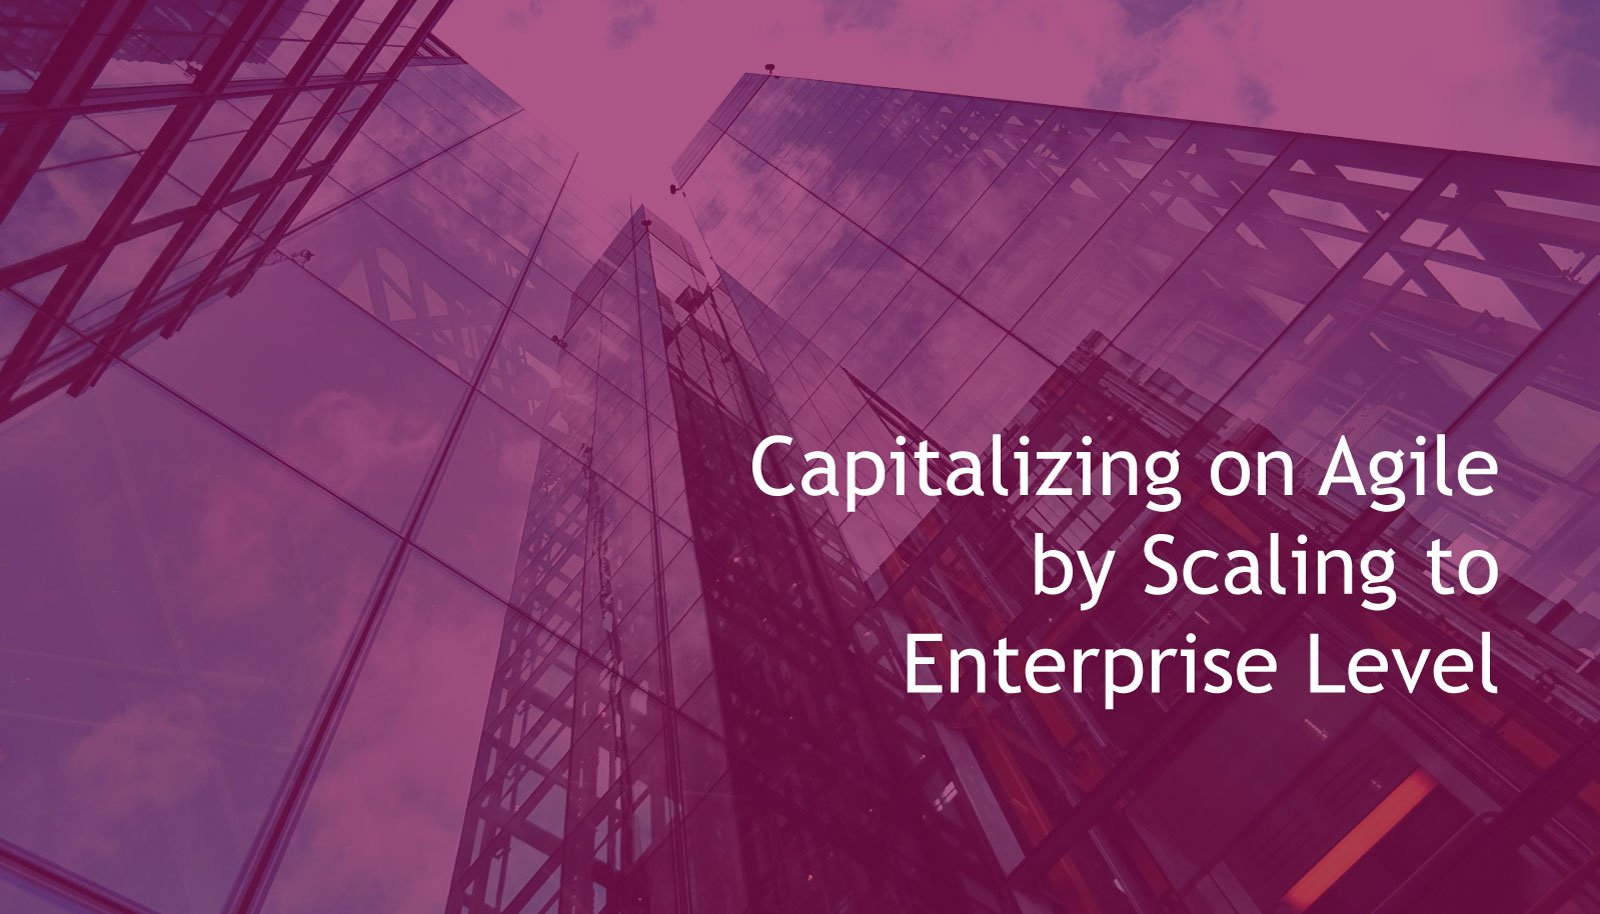 White Paper- Capitalizing on Agile by Scaling to Enterprise Level 1